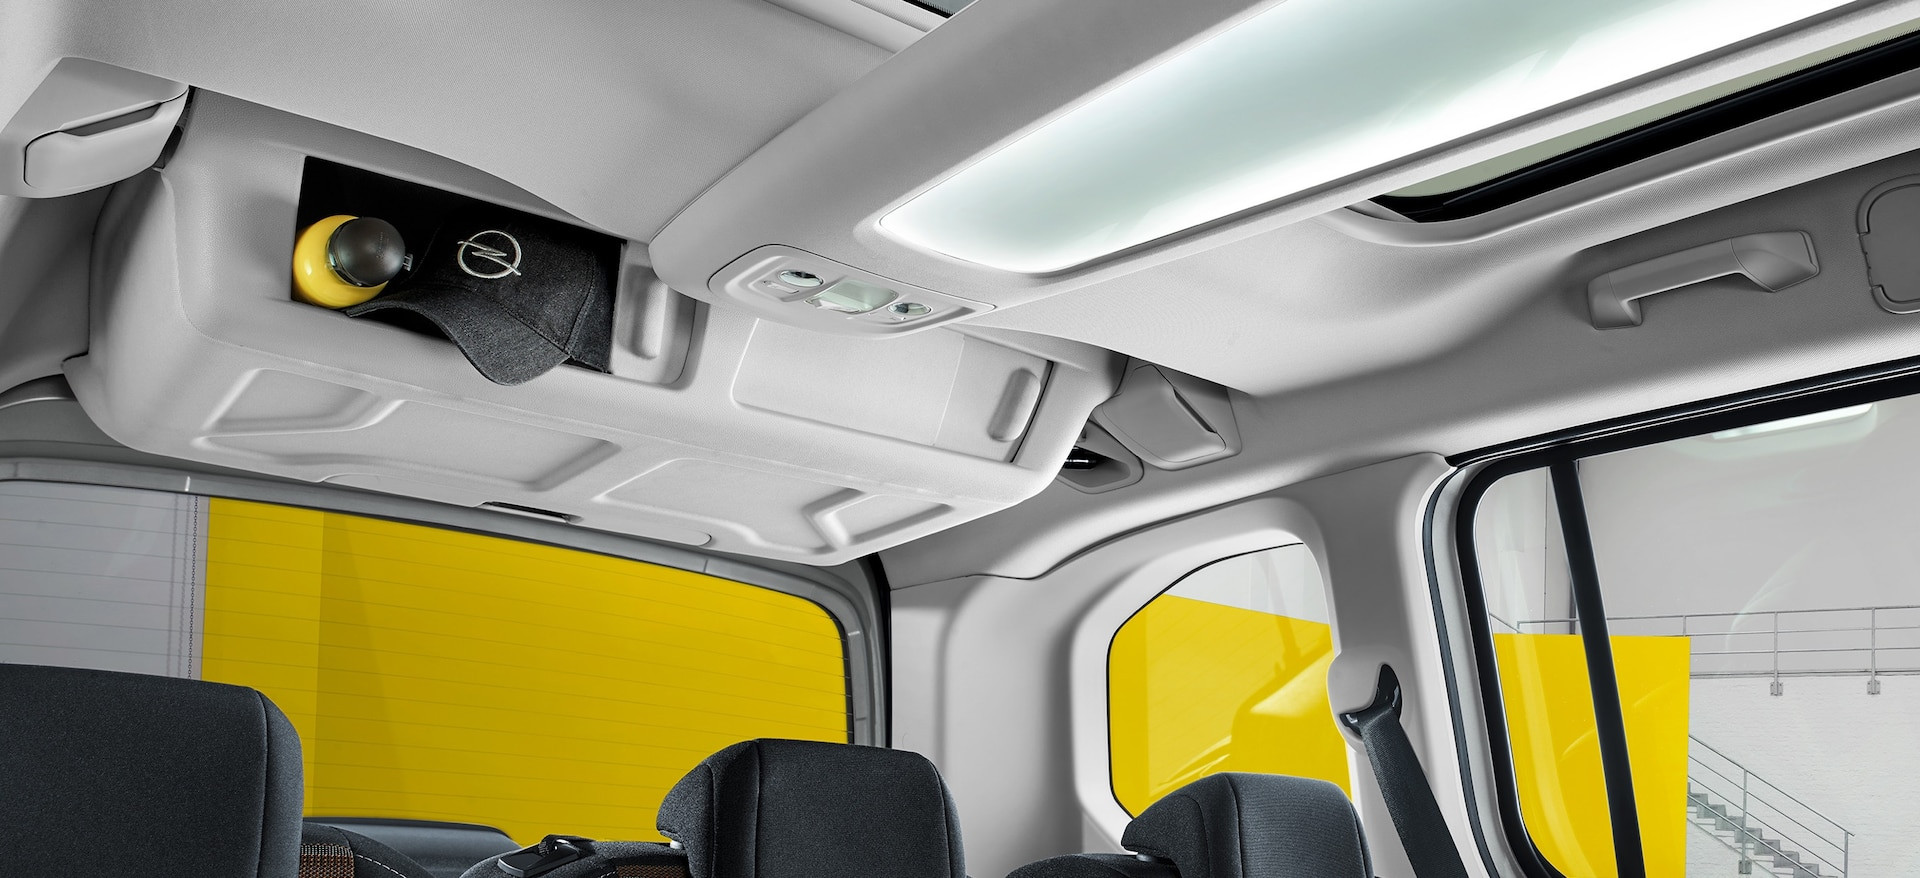 opel_combo_life_storage_options_21x9_cml